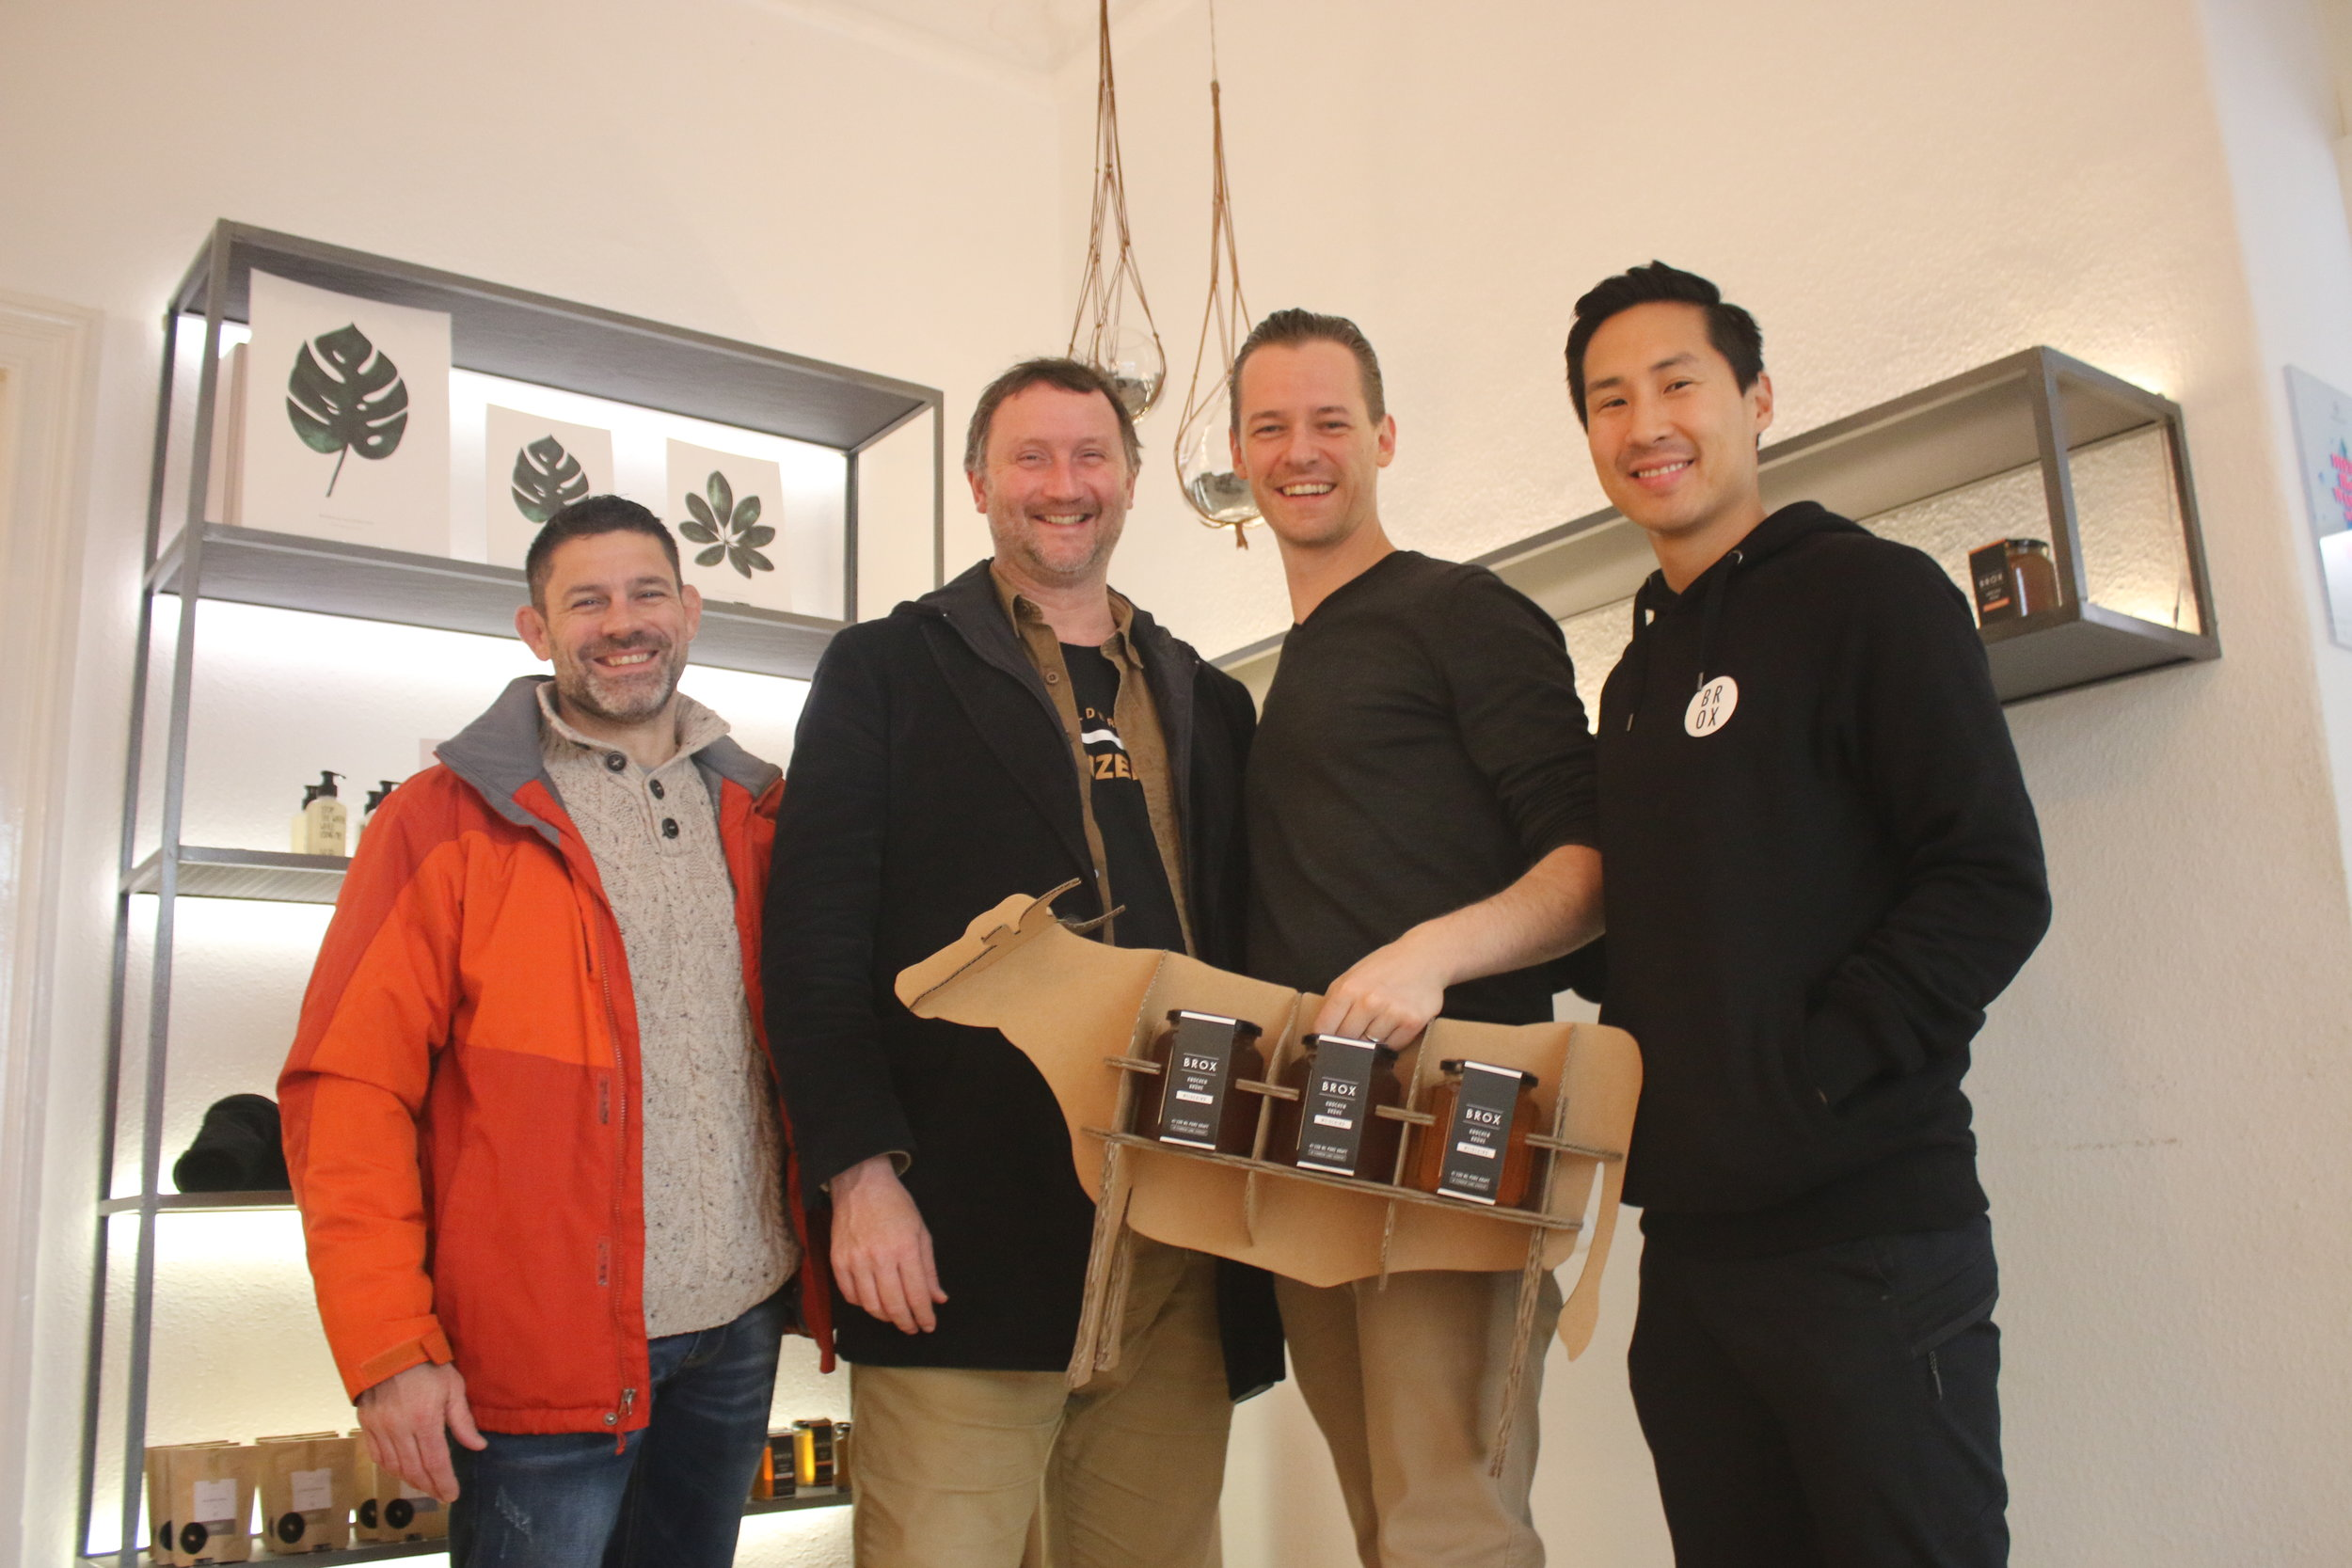 Bill, Jason, Konrad and Jin with Brox Broth in the cardboard cow carrier